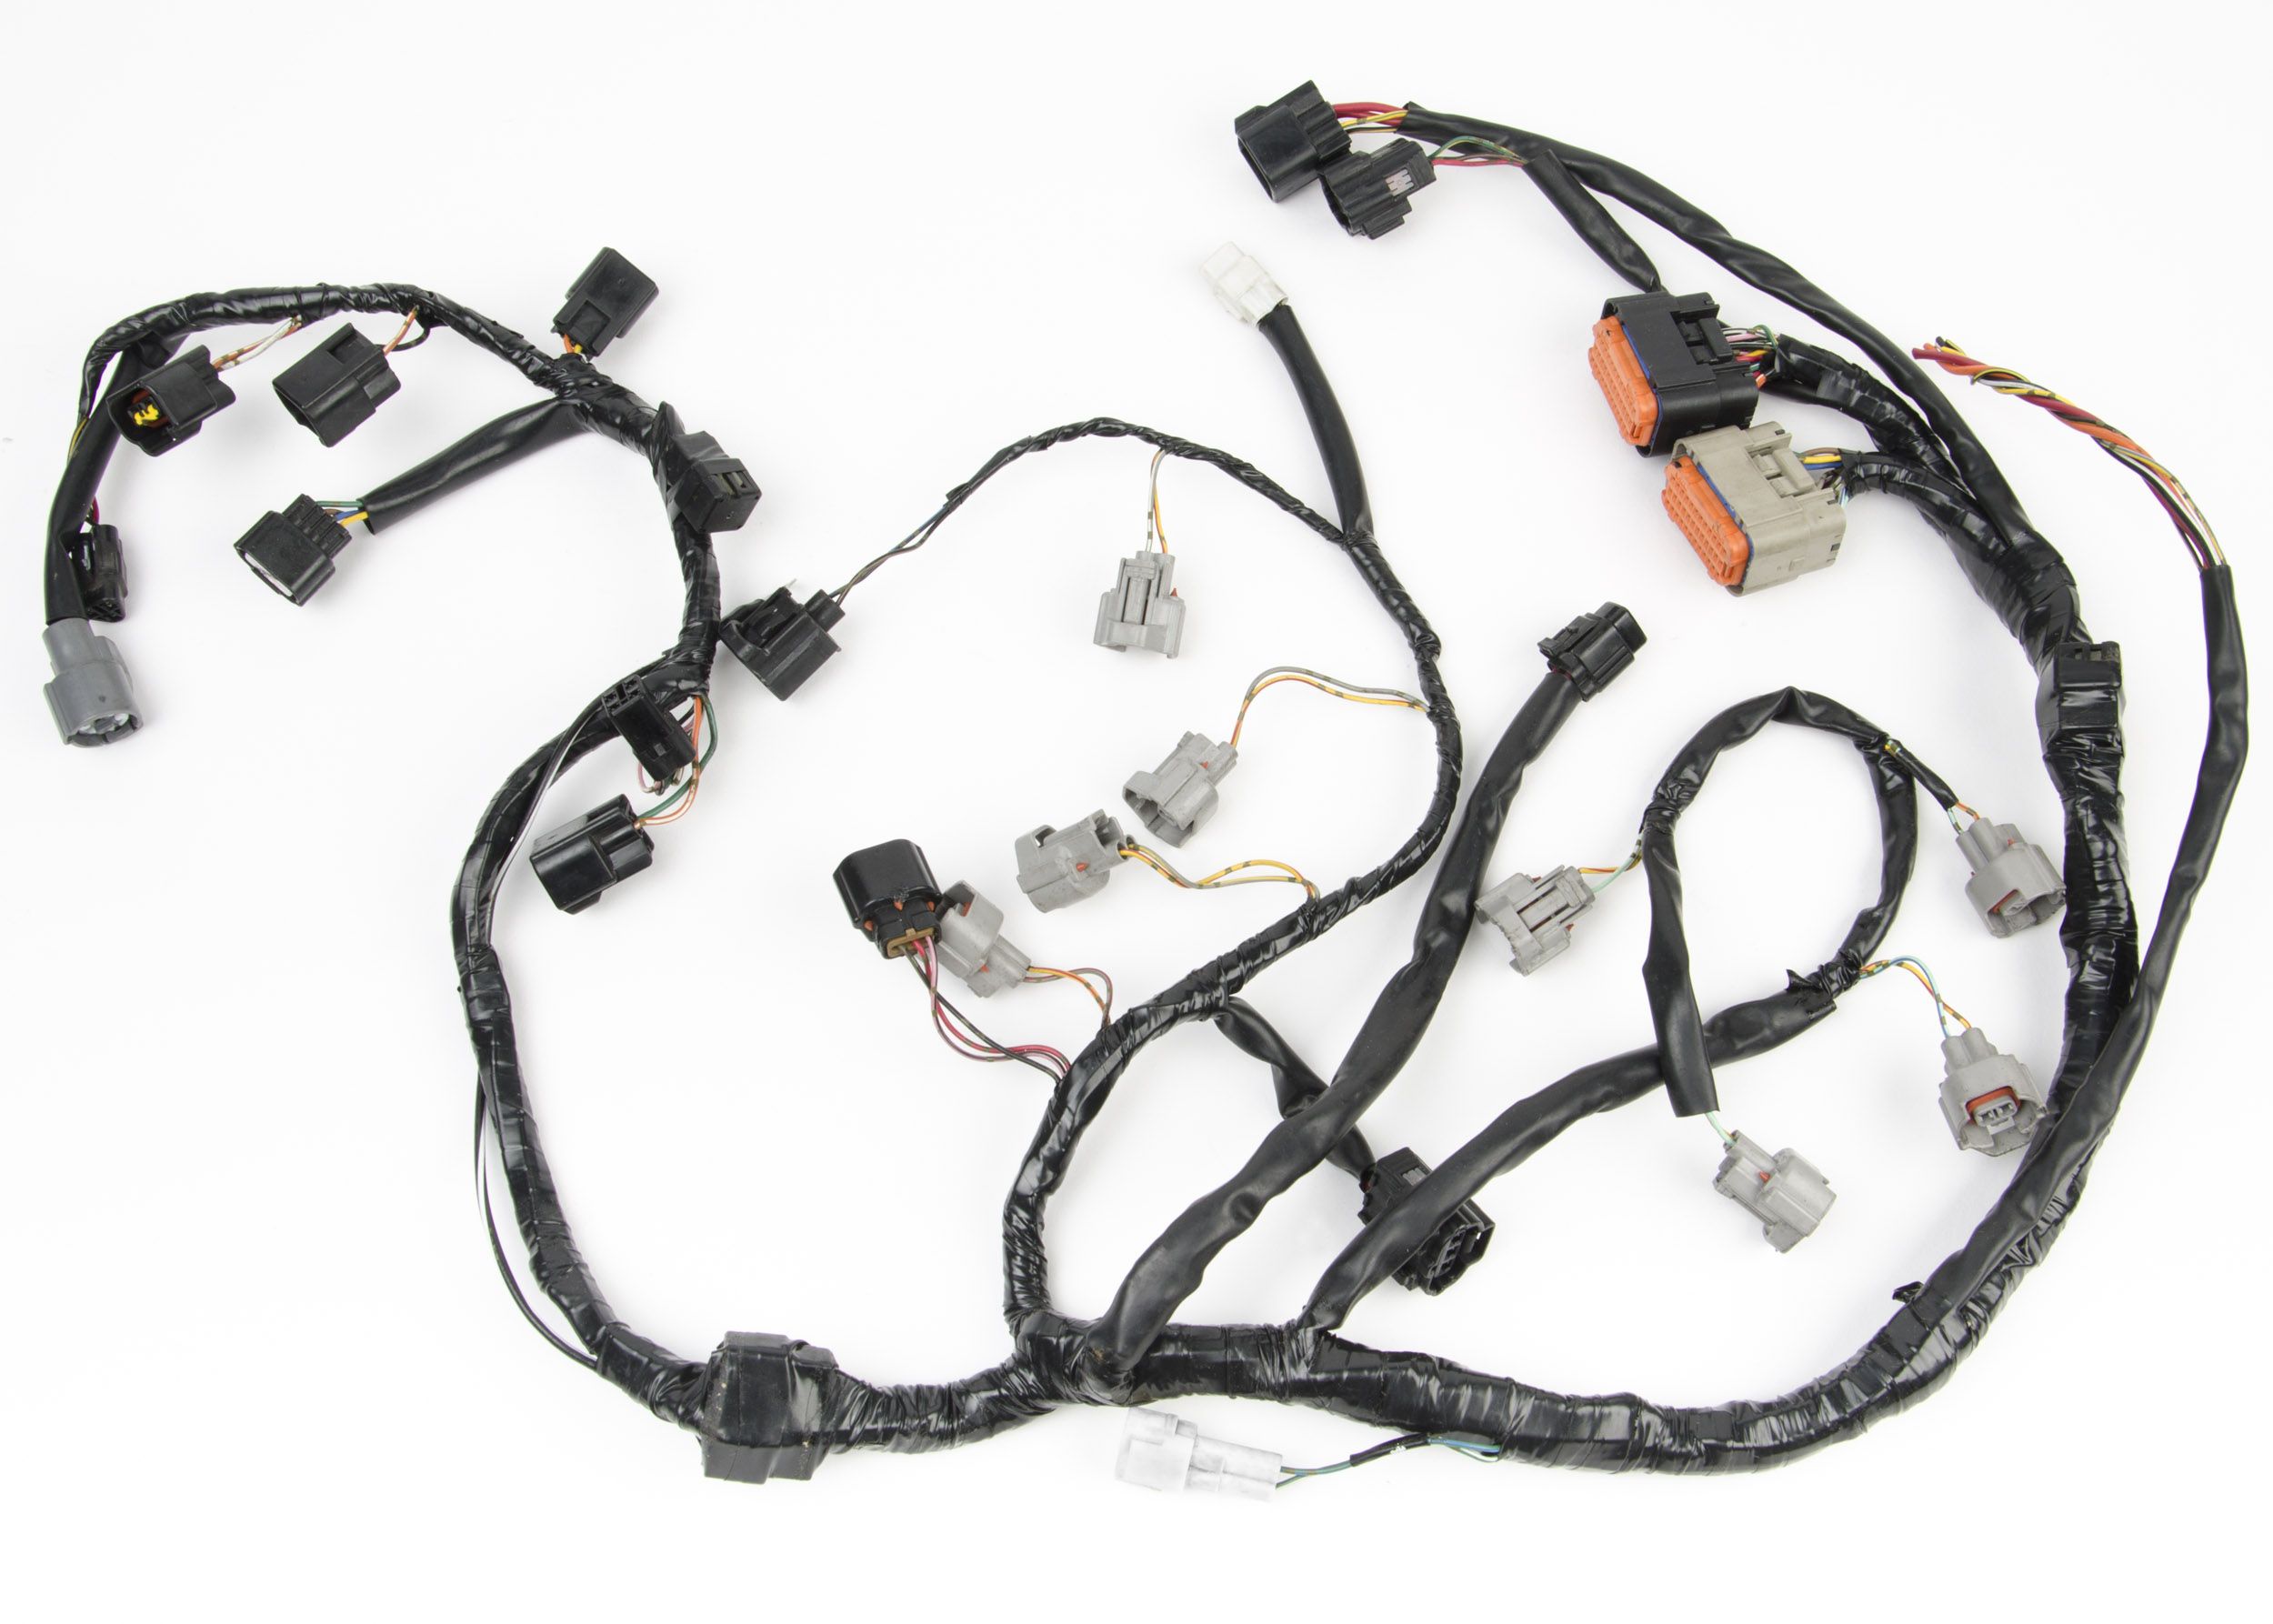 1999 Yamaha R1 Wiring Harness : 29 Wiring Diagram Images